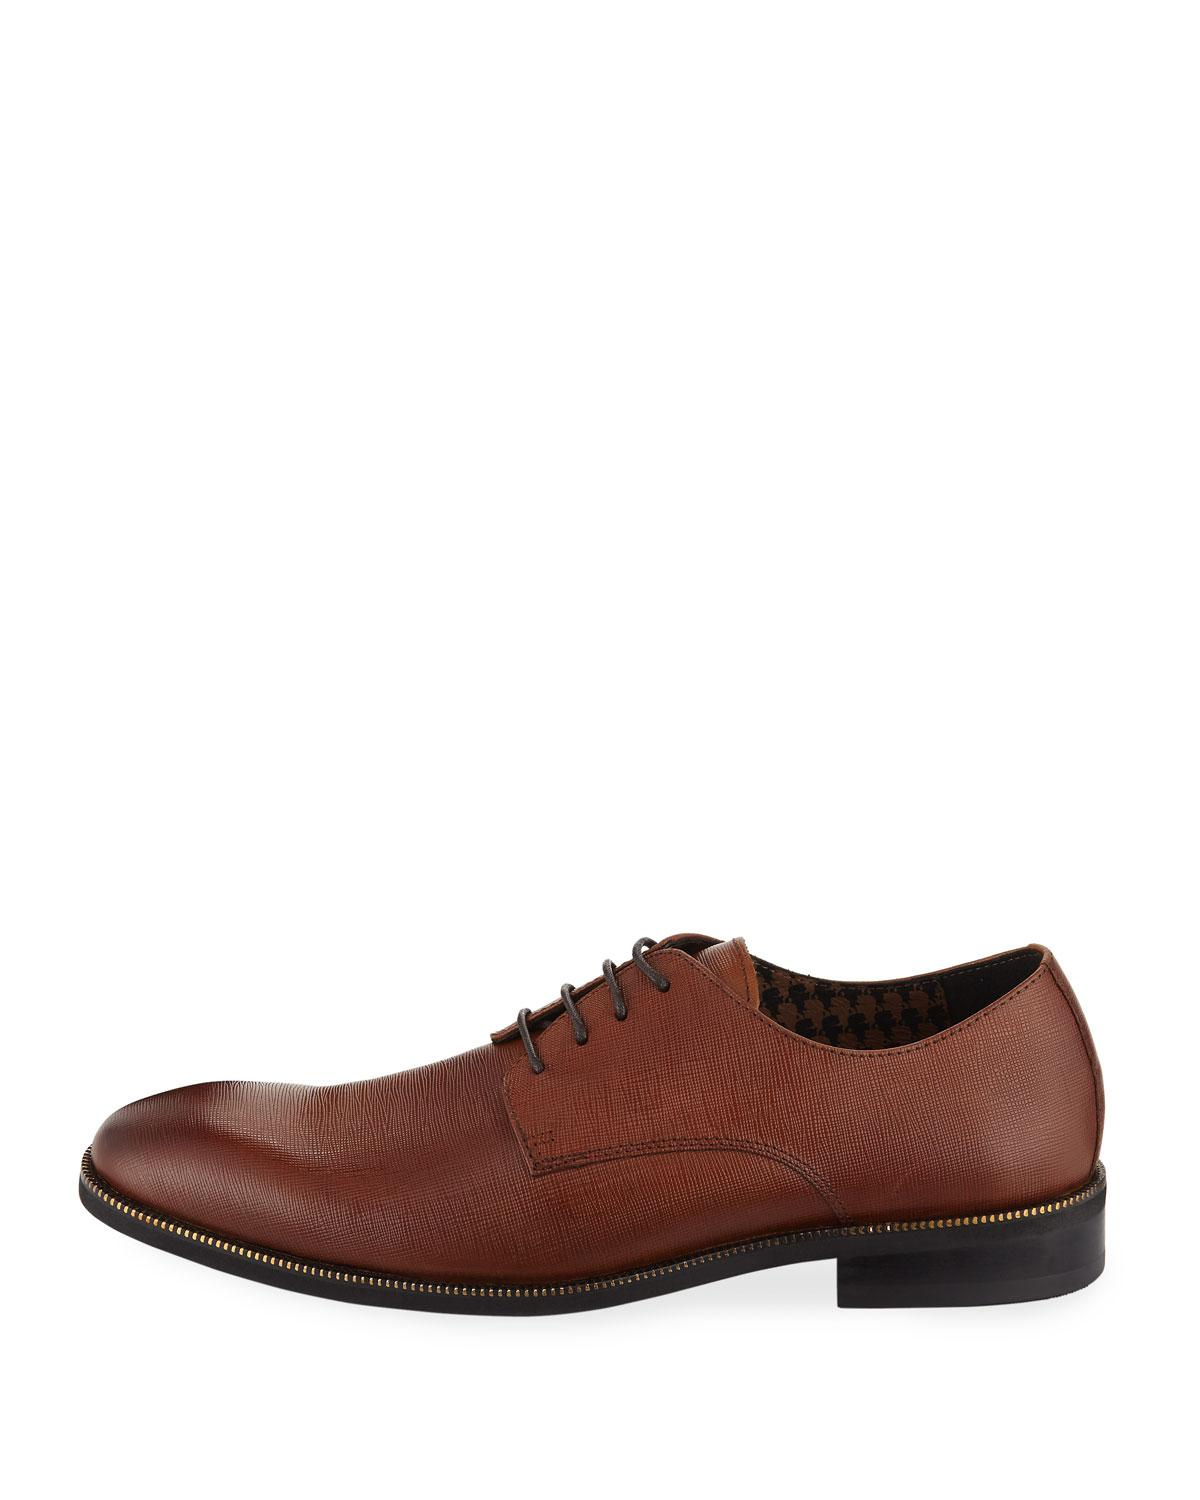 Lyst Karl Lagerfeld Men S Oxford Lace Up Dress Shoes In Brown For